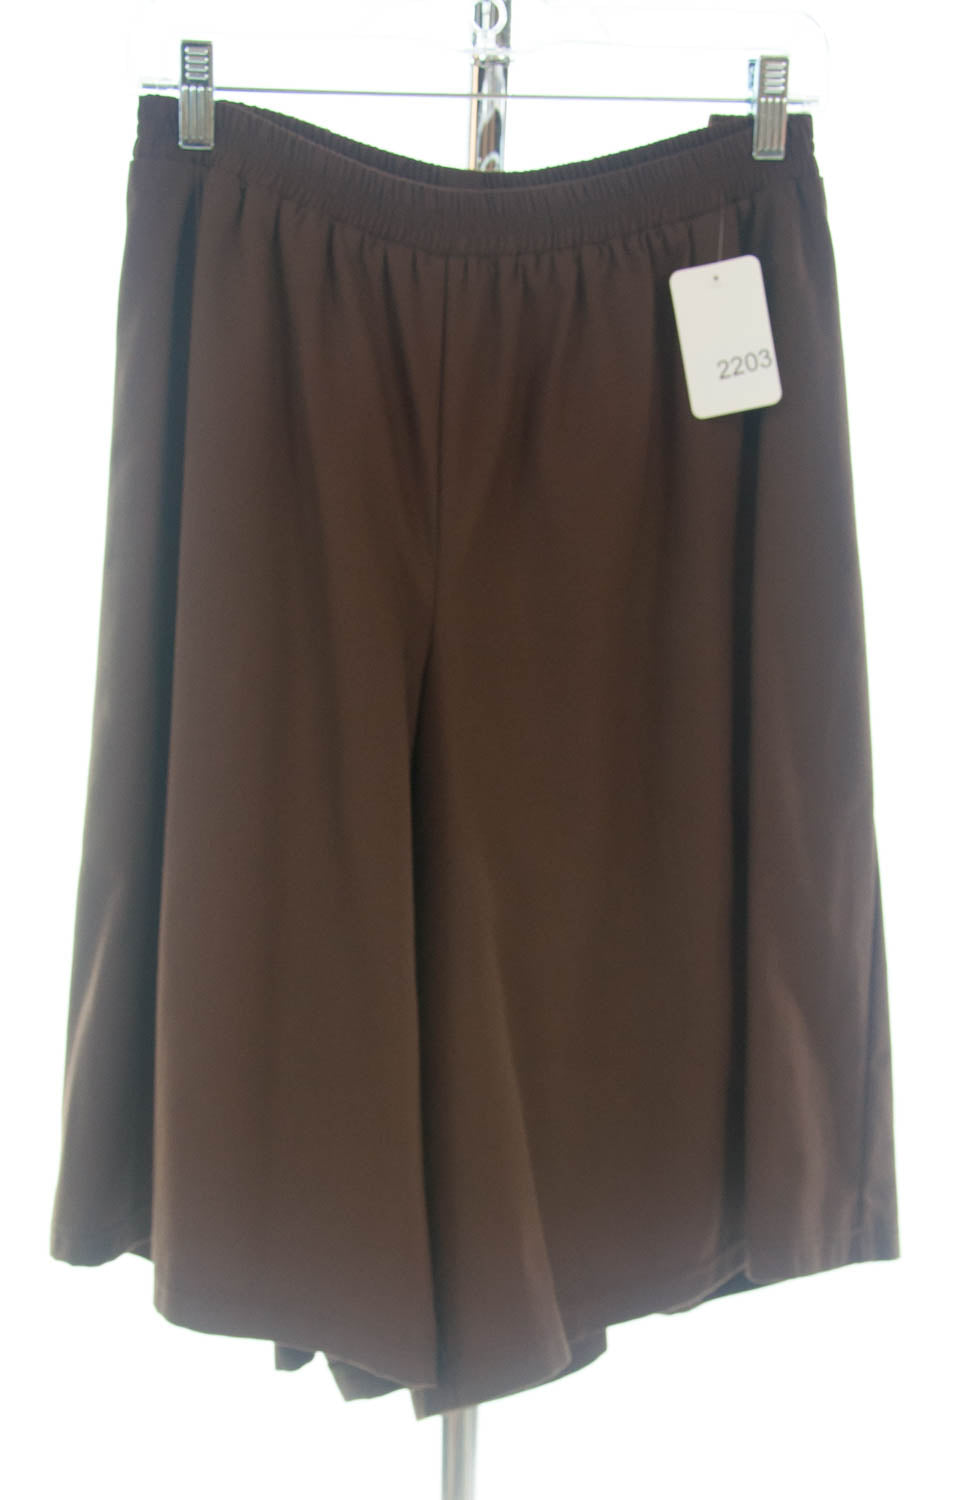 #2203 Sale Rack Item / Walking Culottes / Womens Plus Size 26 / Brown Cotton